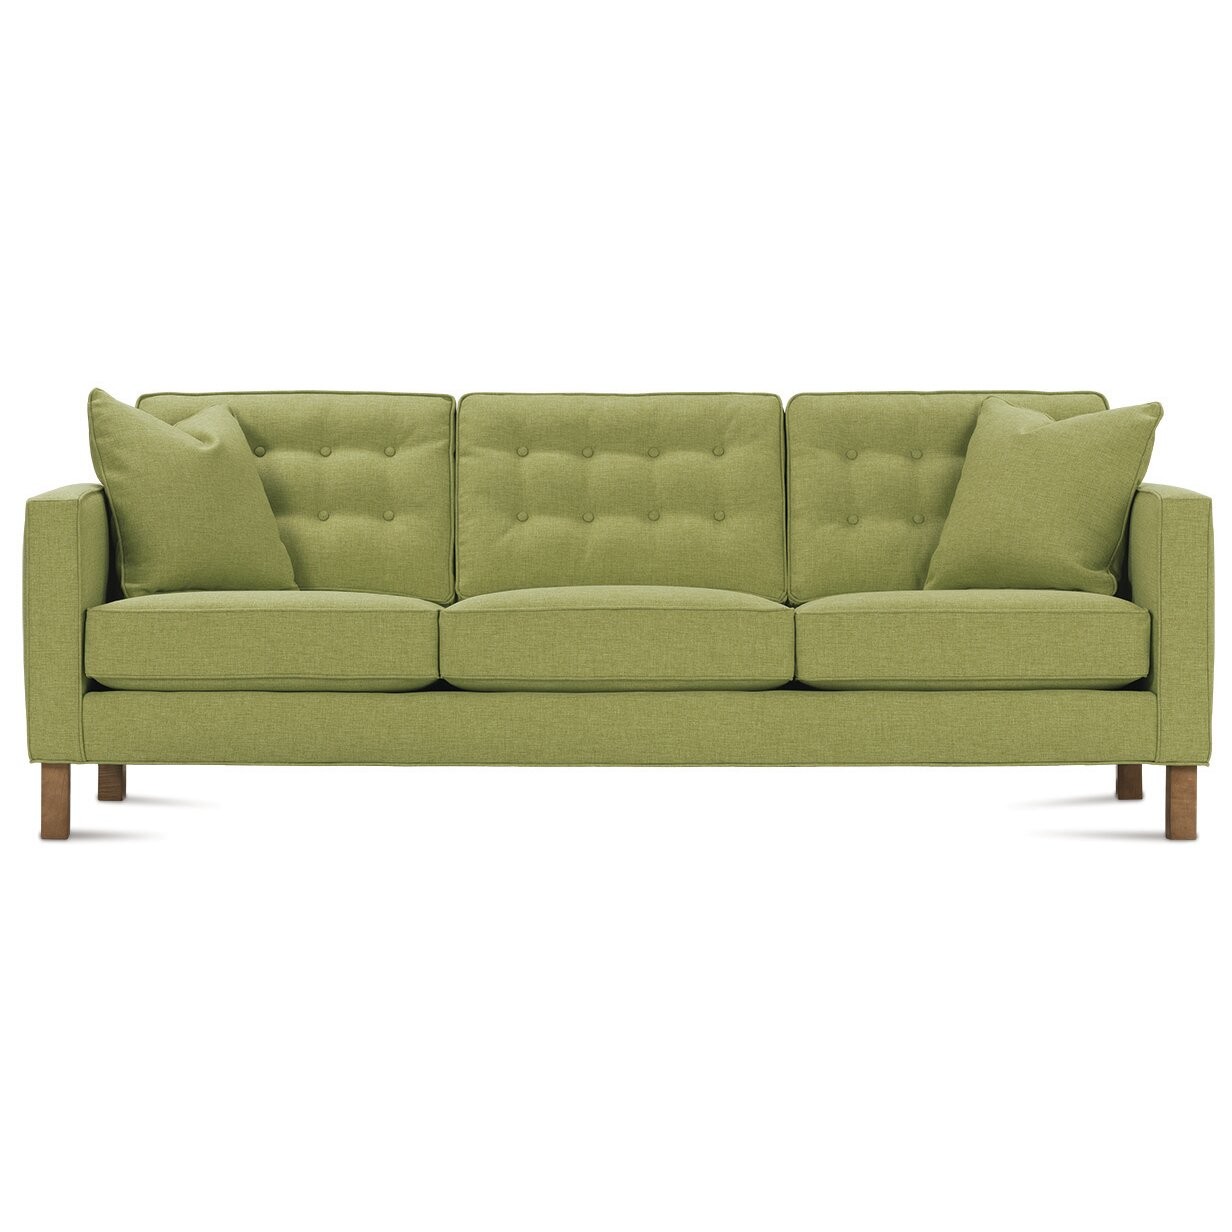 Rowe furniture abbott sofa reviews wayfair for Divan furniture